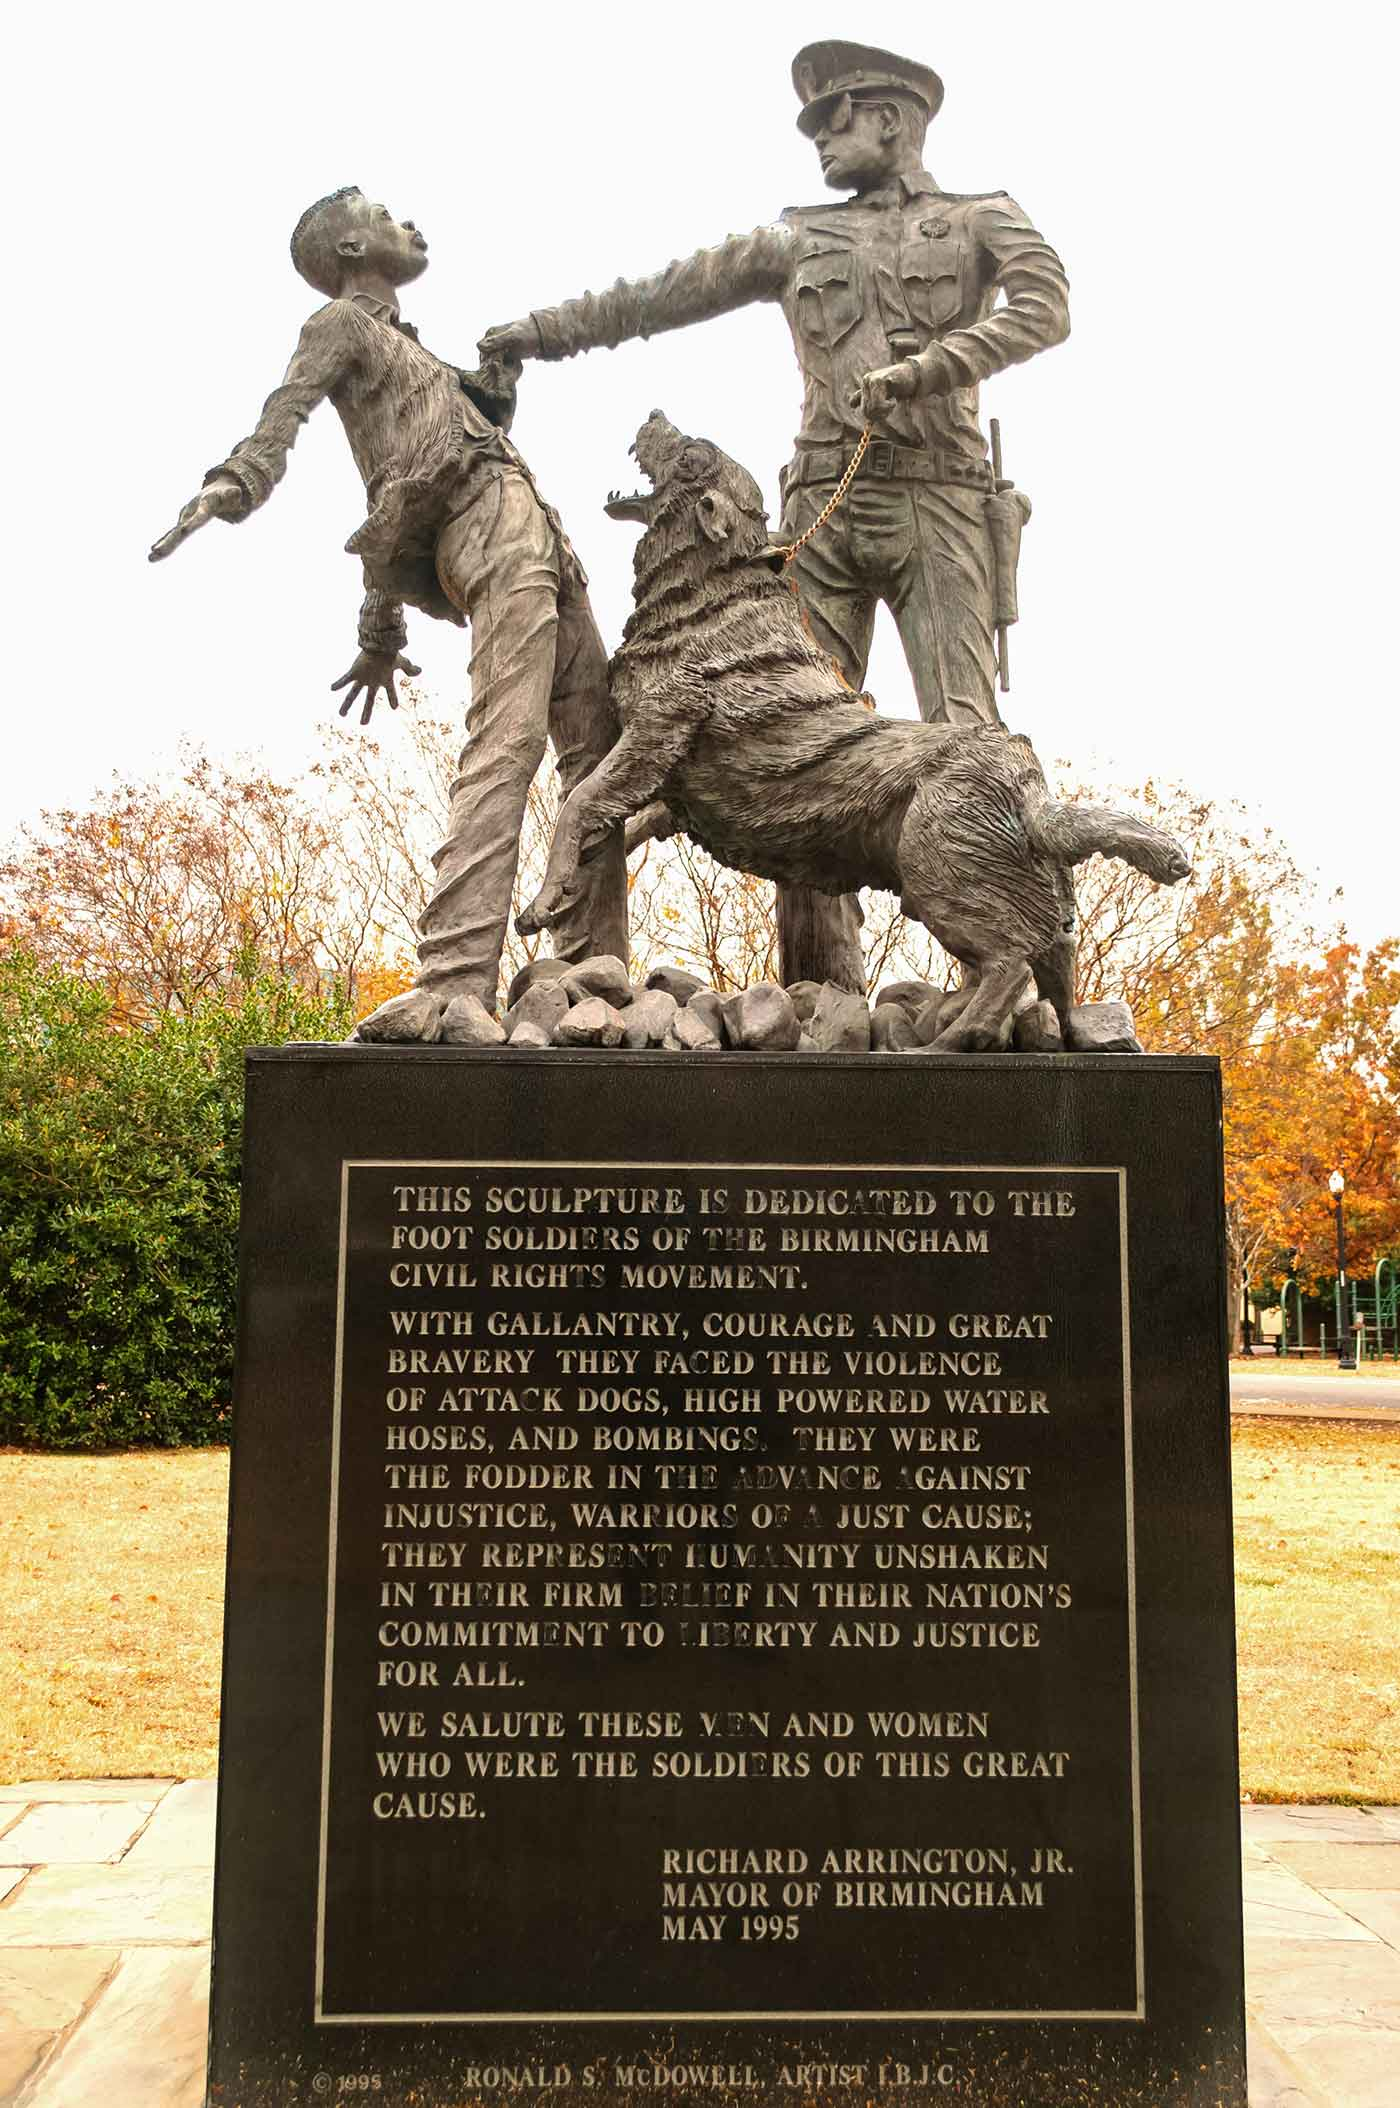 The Foot Soldier Statue, located in Kelly Ingram Park, Birmingham, Alabama